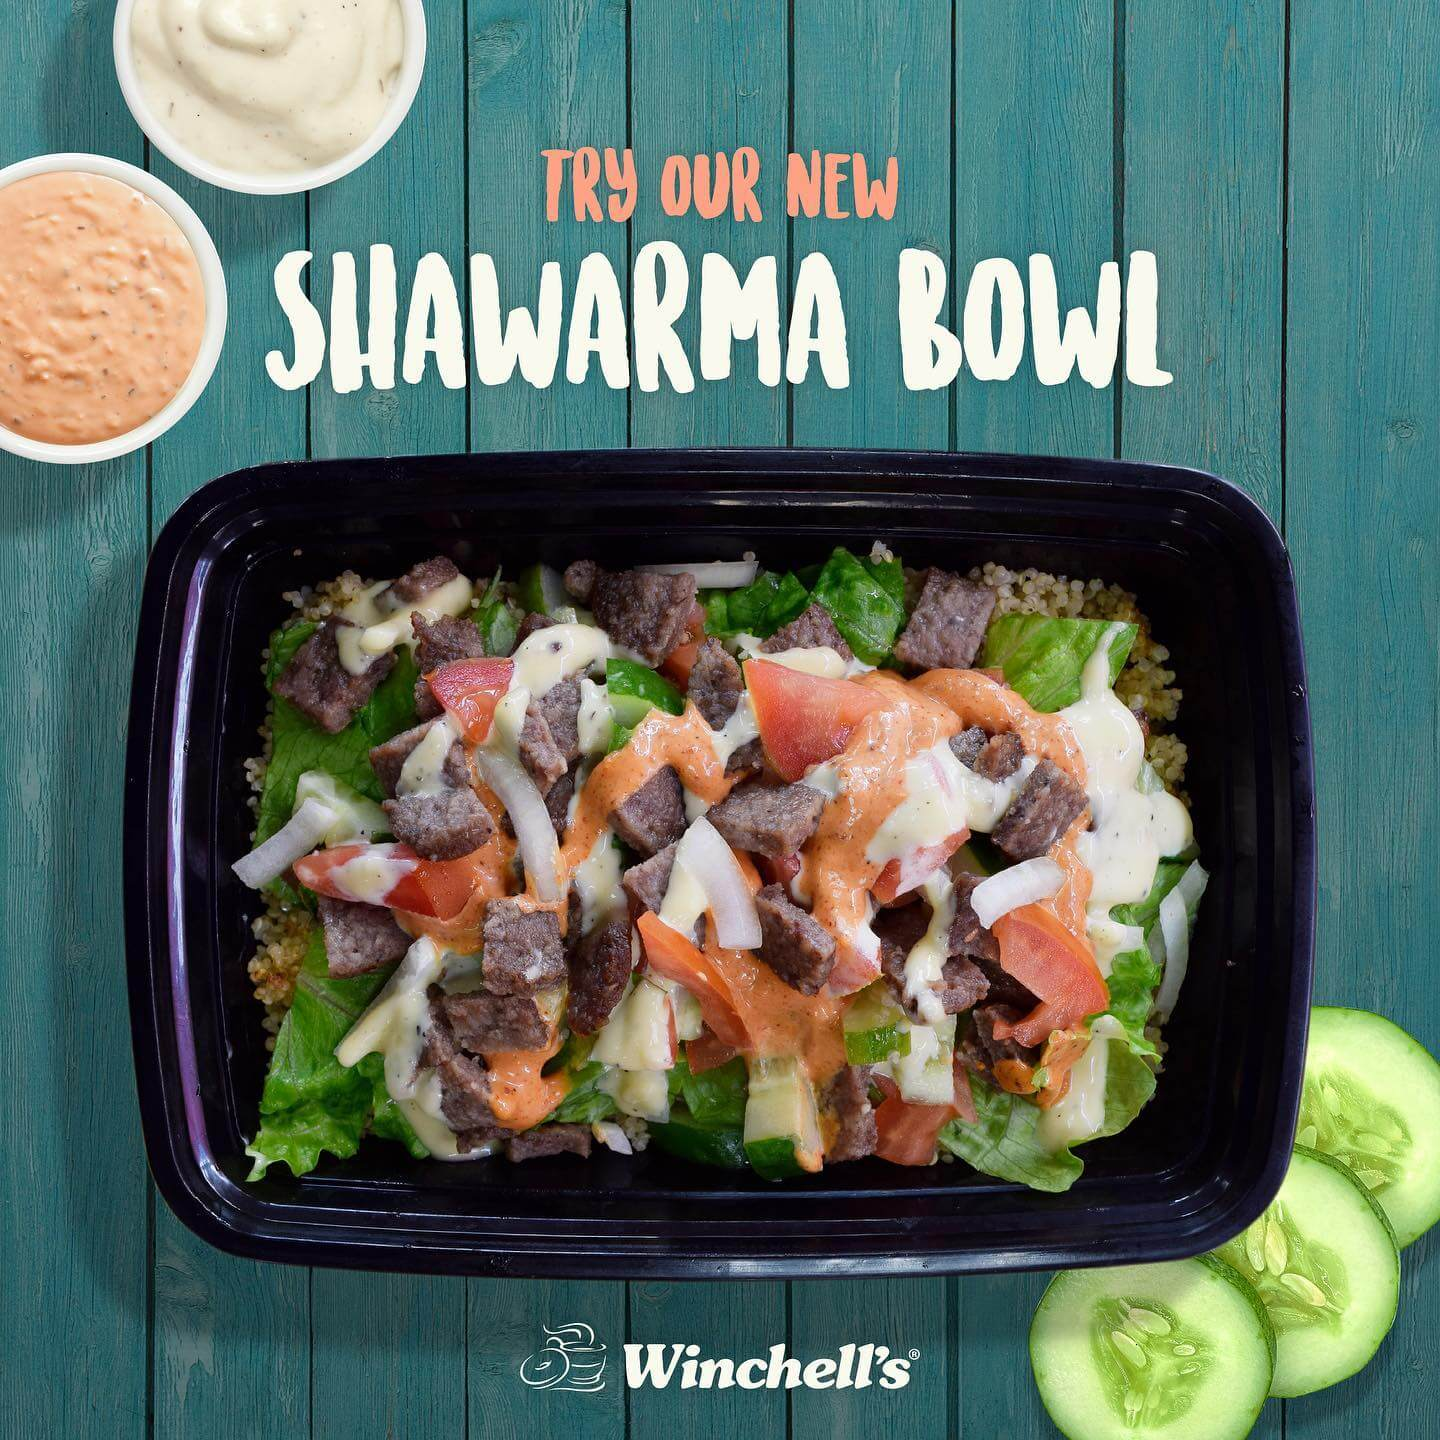 promotions - Shawarma Bowl